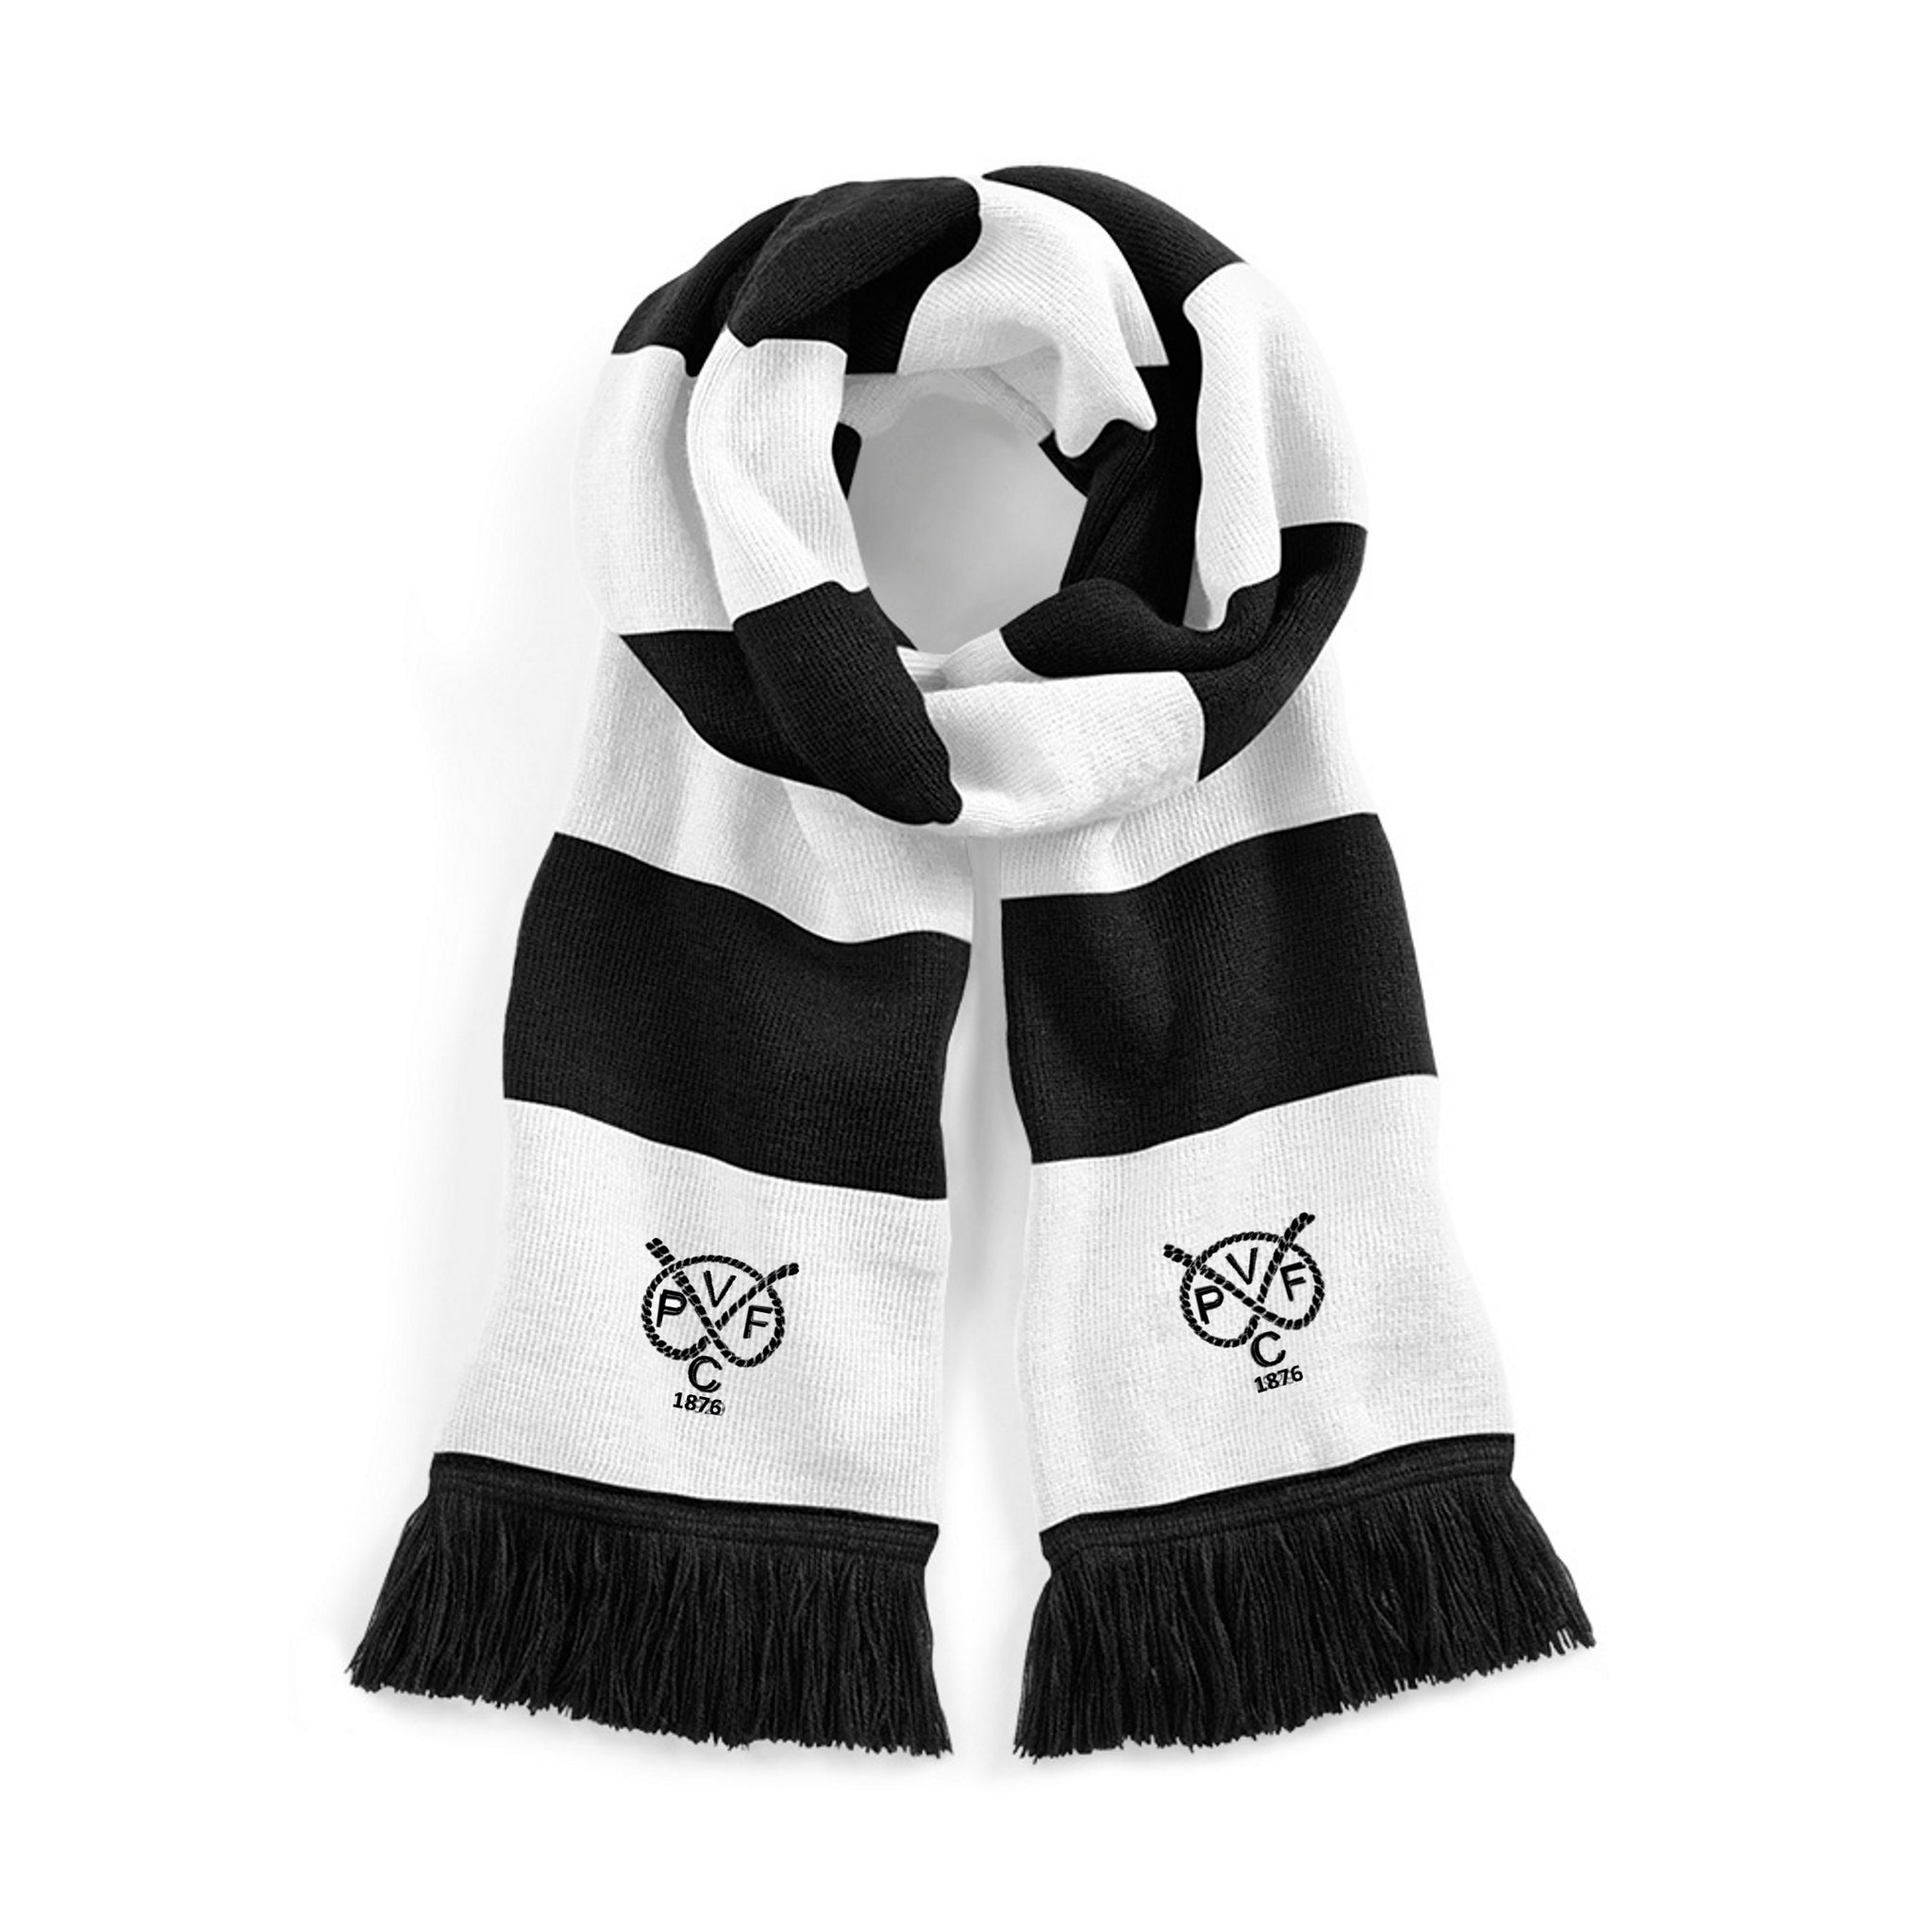 Port Vale Retro 1876 Traditional Football Scarf - Scarf